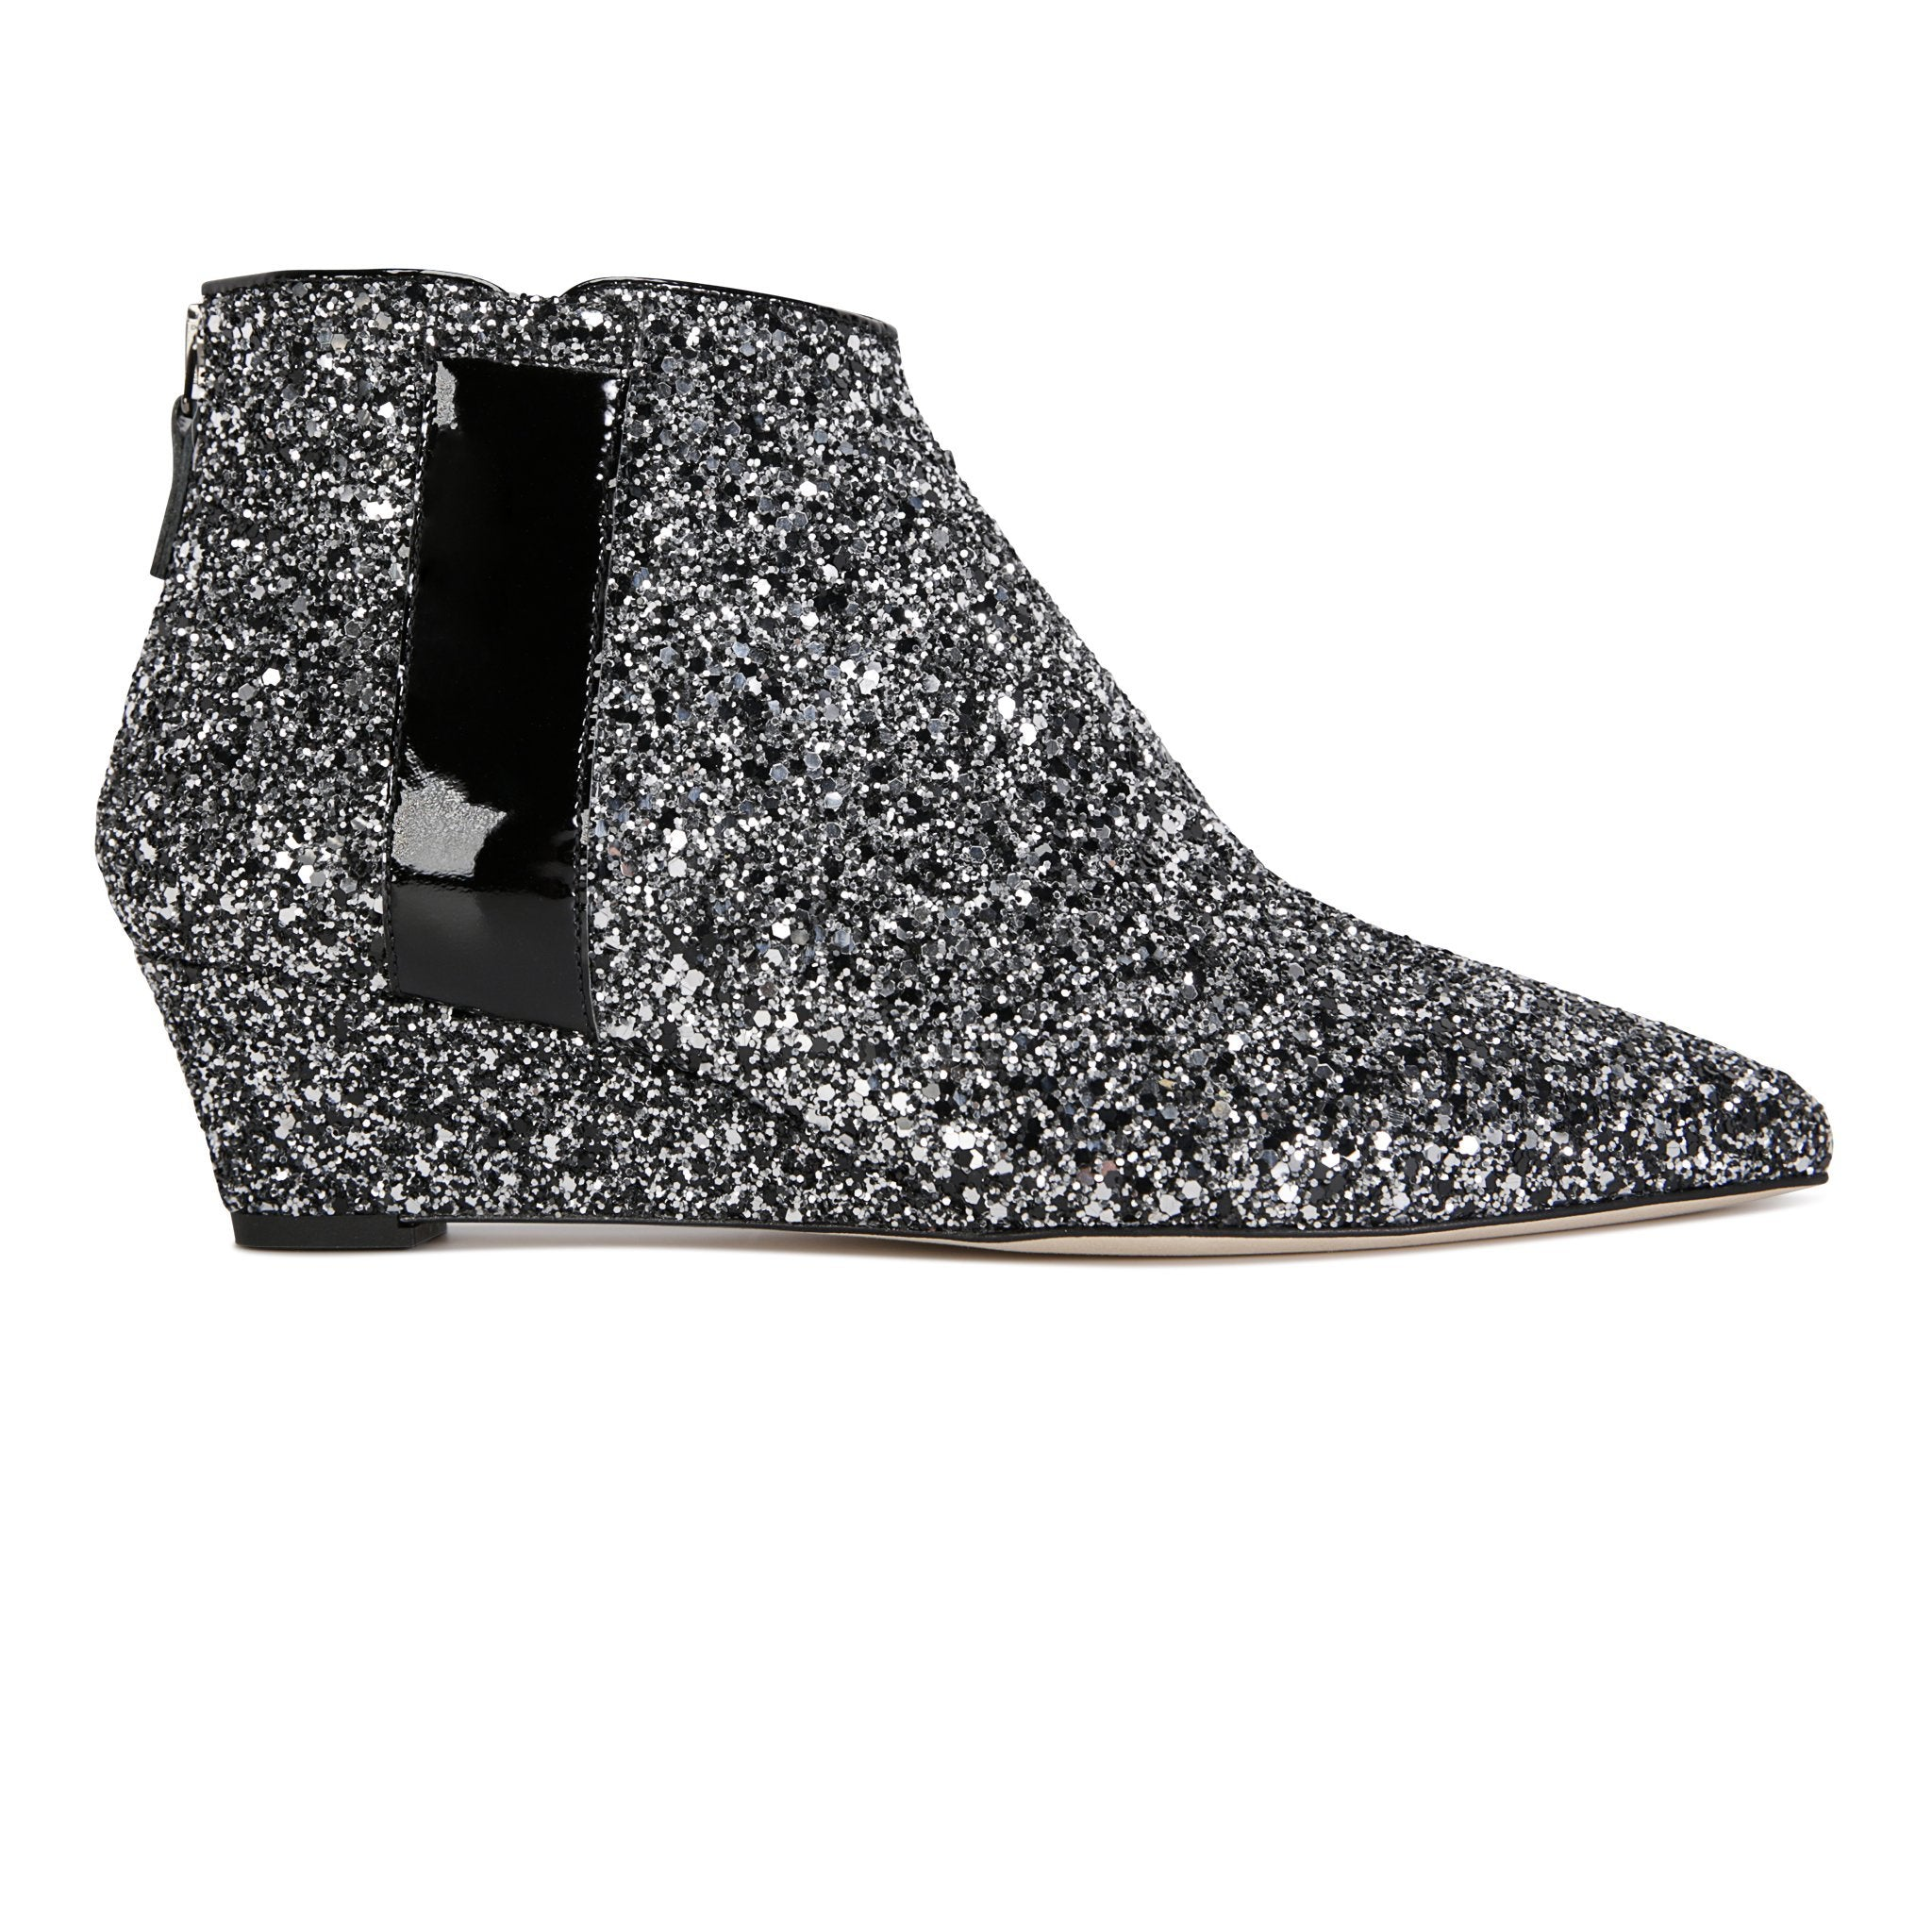 FORTE - Glitter Notte + Patent Nero, VIAJIYU - Women's Hand Made Sustainable Luxury Shoes. Made in Italy. Made to Order.